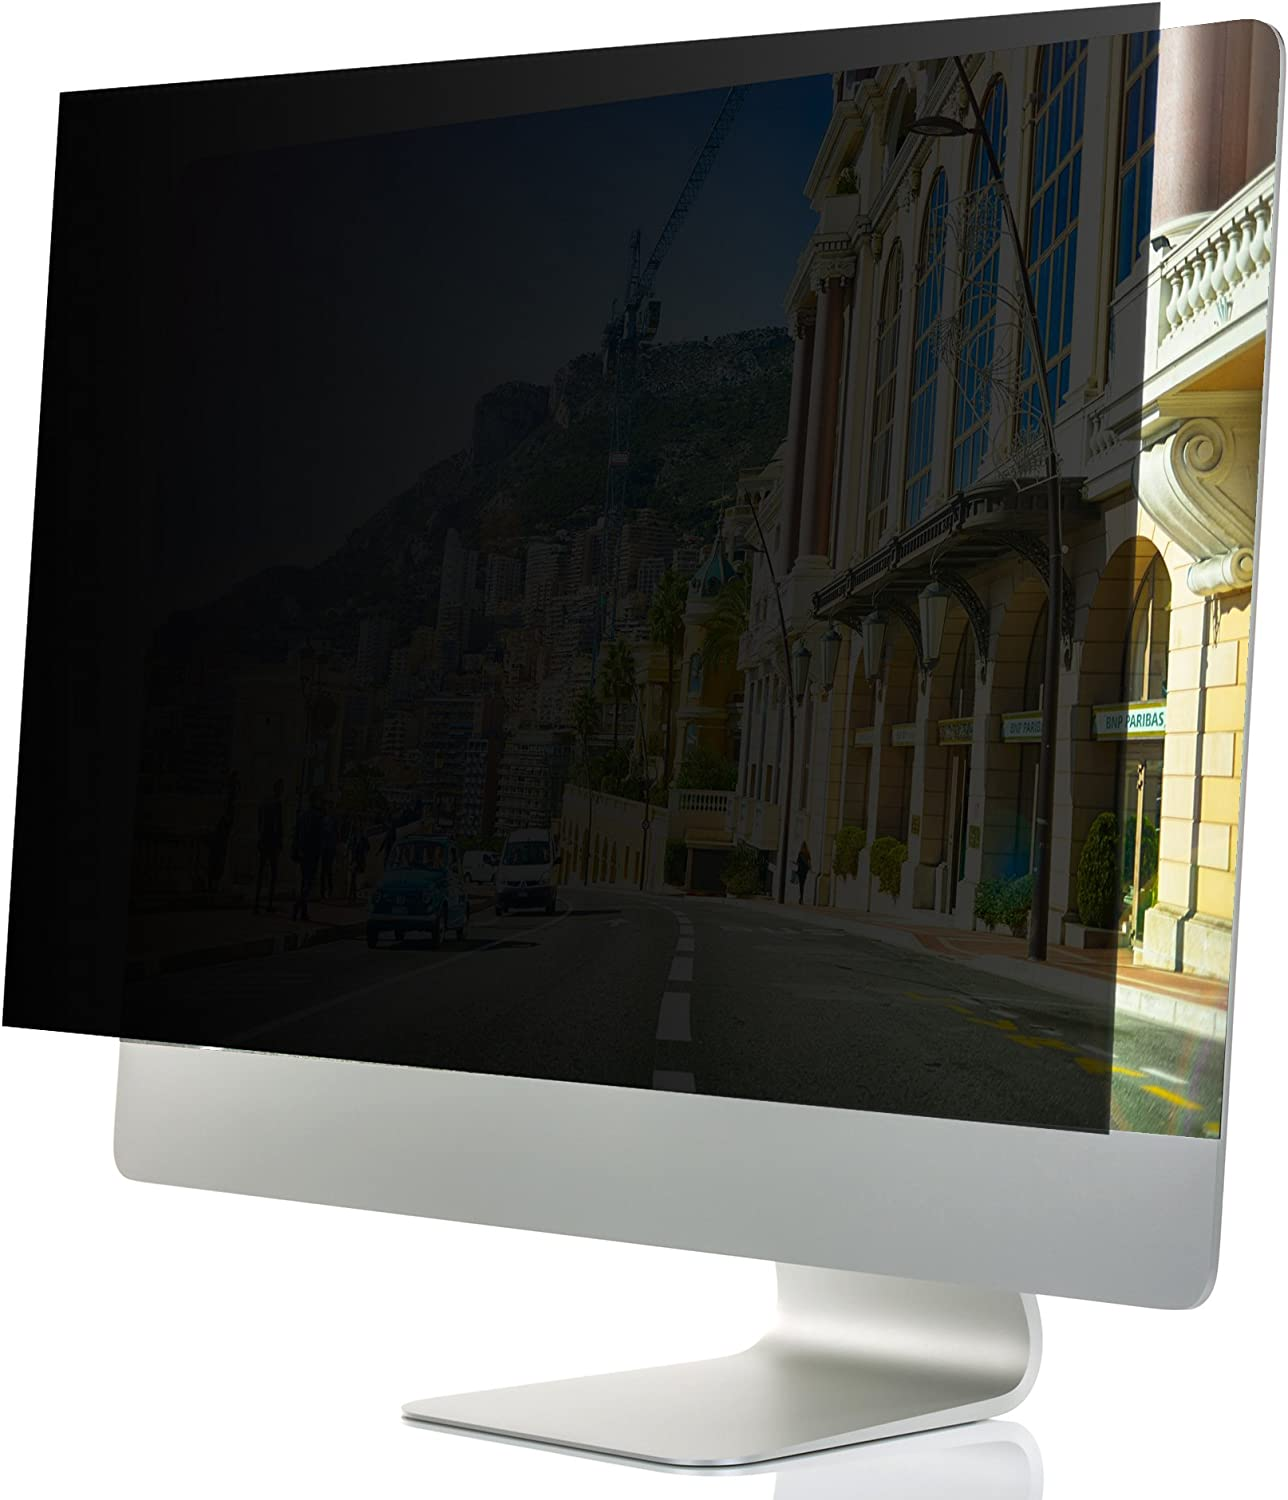 "22-Inch Computer Privacy Screen Filter for Desktop Monitors (Diagonally-Measured); Anti-Glare Anti-Scratch Film; Protects Sensitive Confidential Data (22"" Widescreen (16:10 Aspect Ratio))"